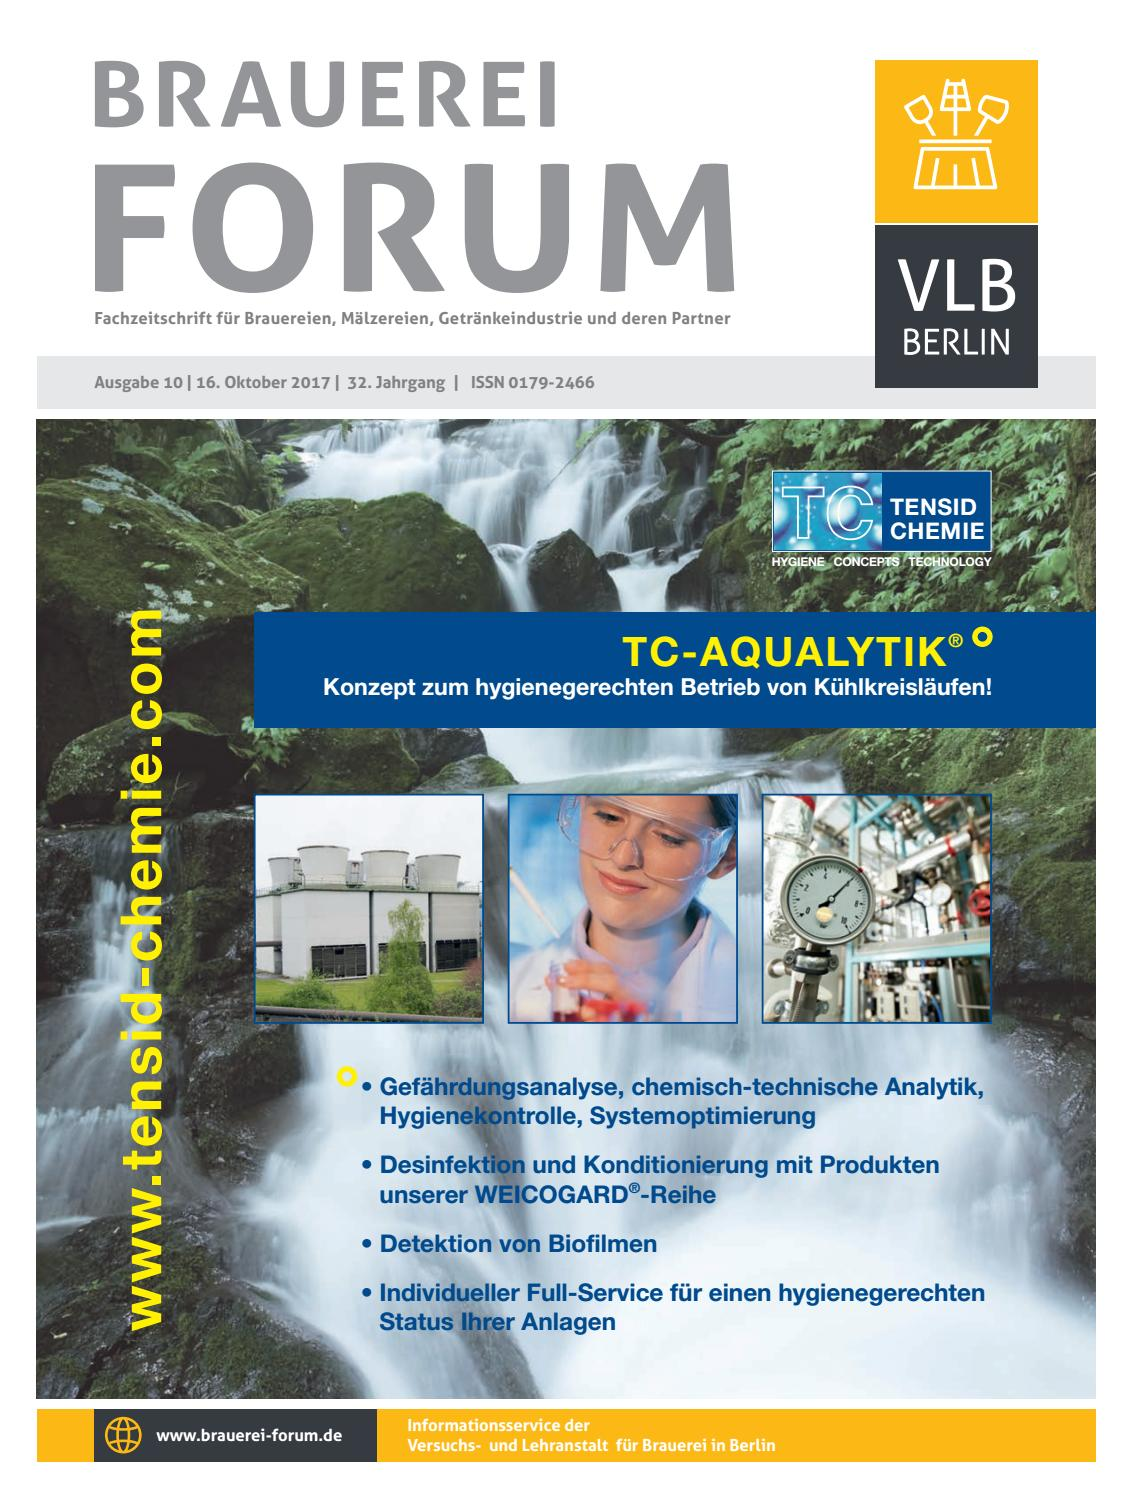 Brauerei Forum 10/2017 by VLB Berlin - issuu